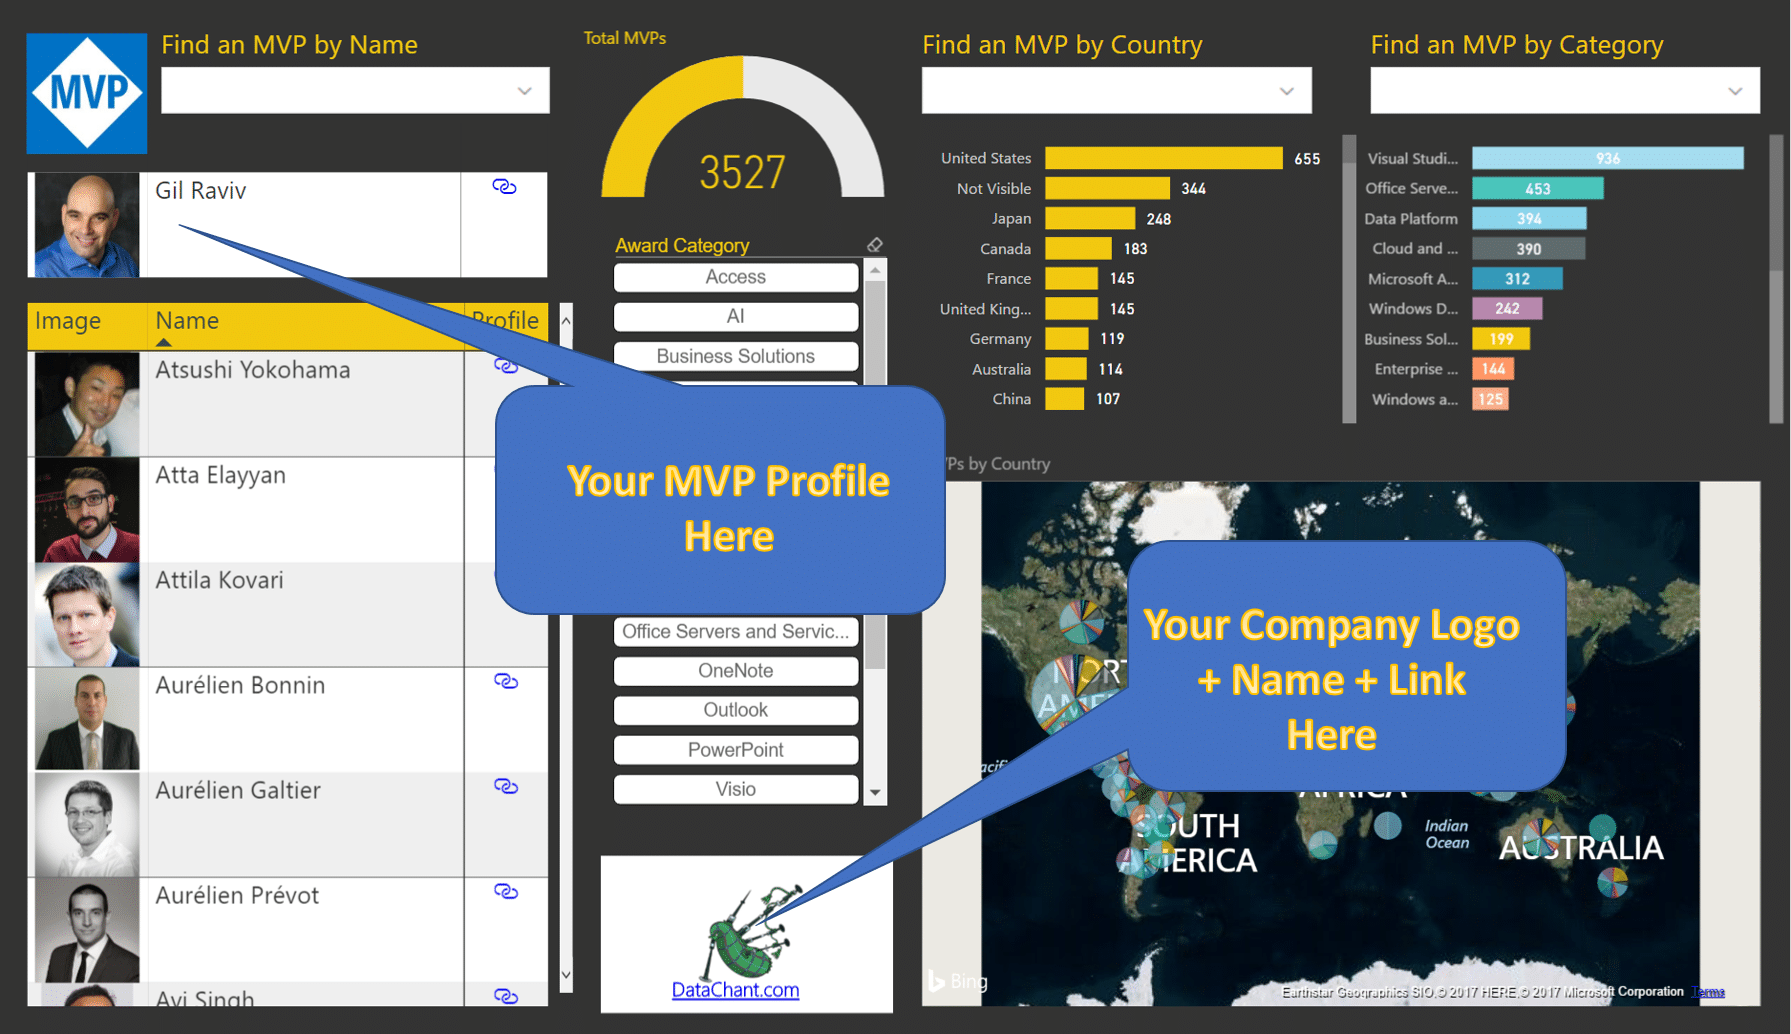 Customized MVP Report to Promote You